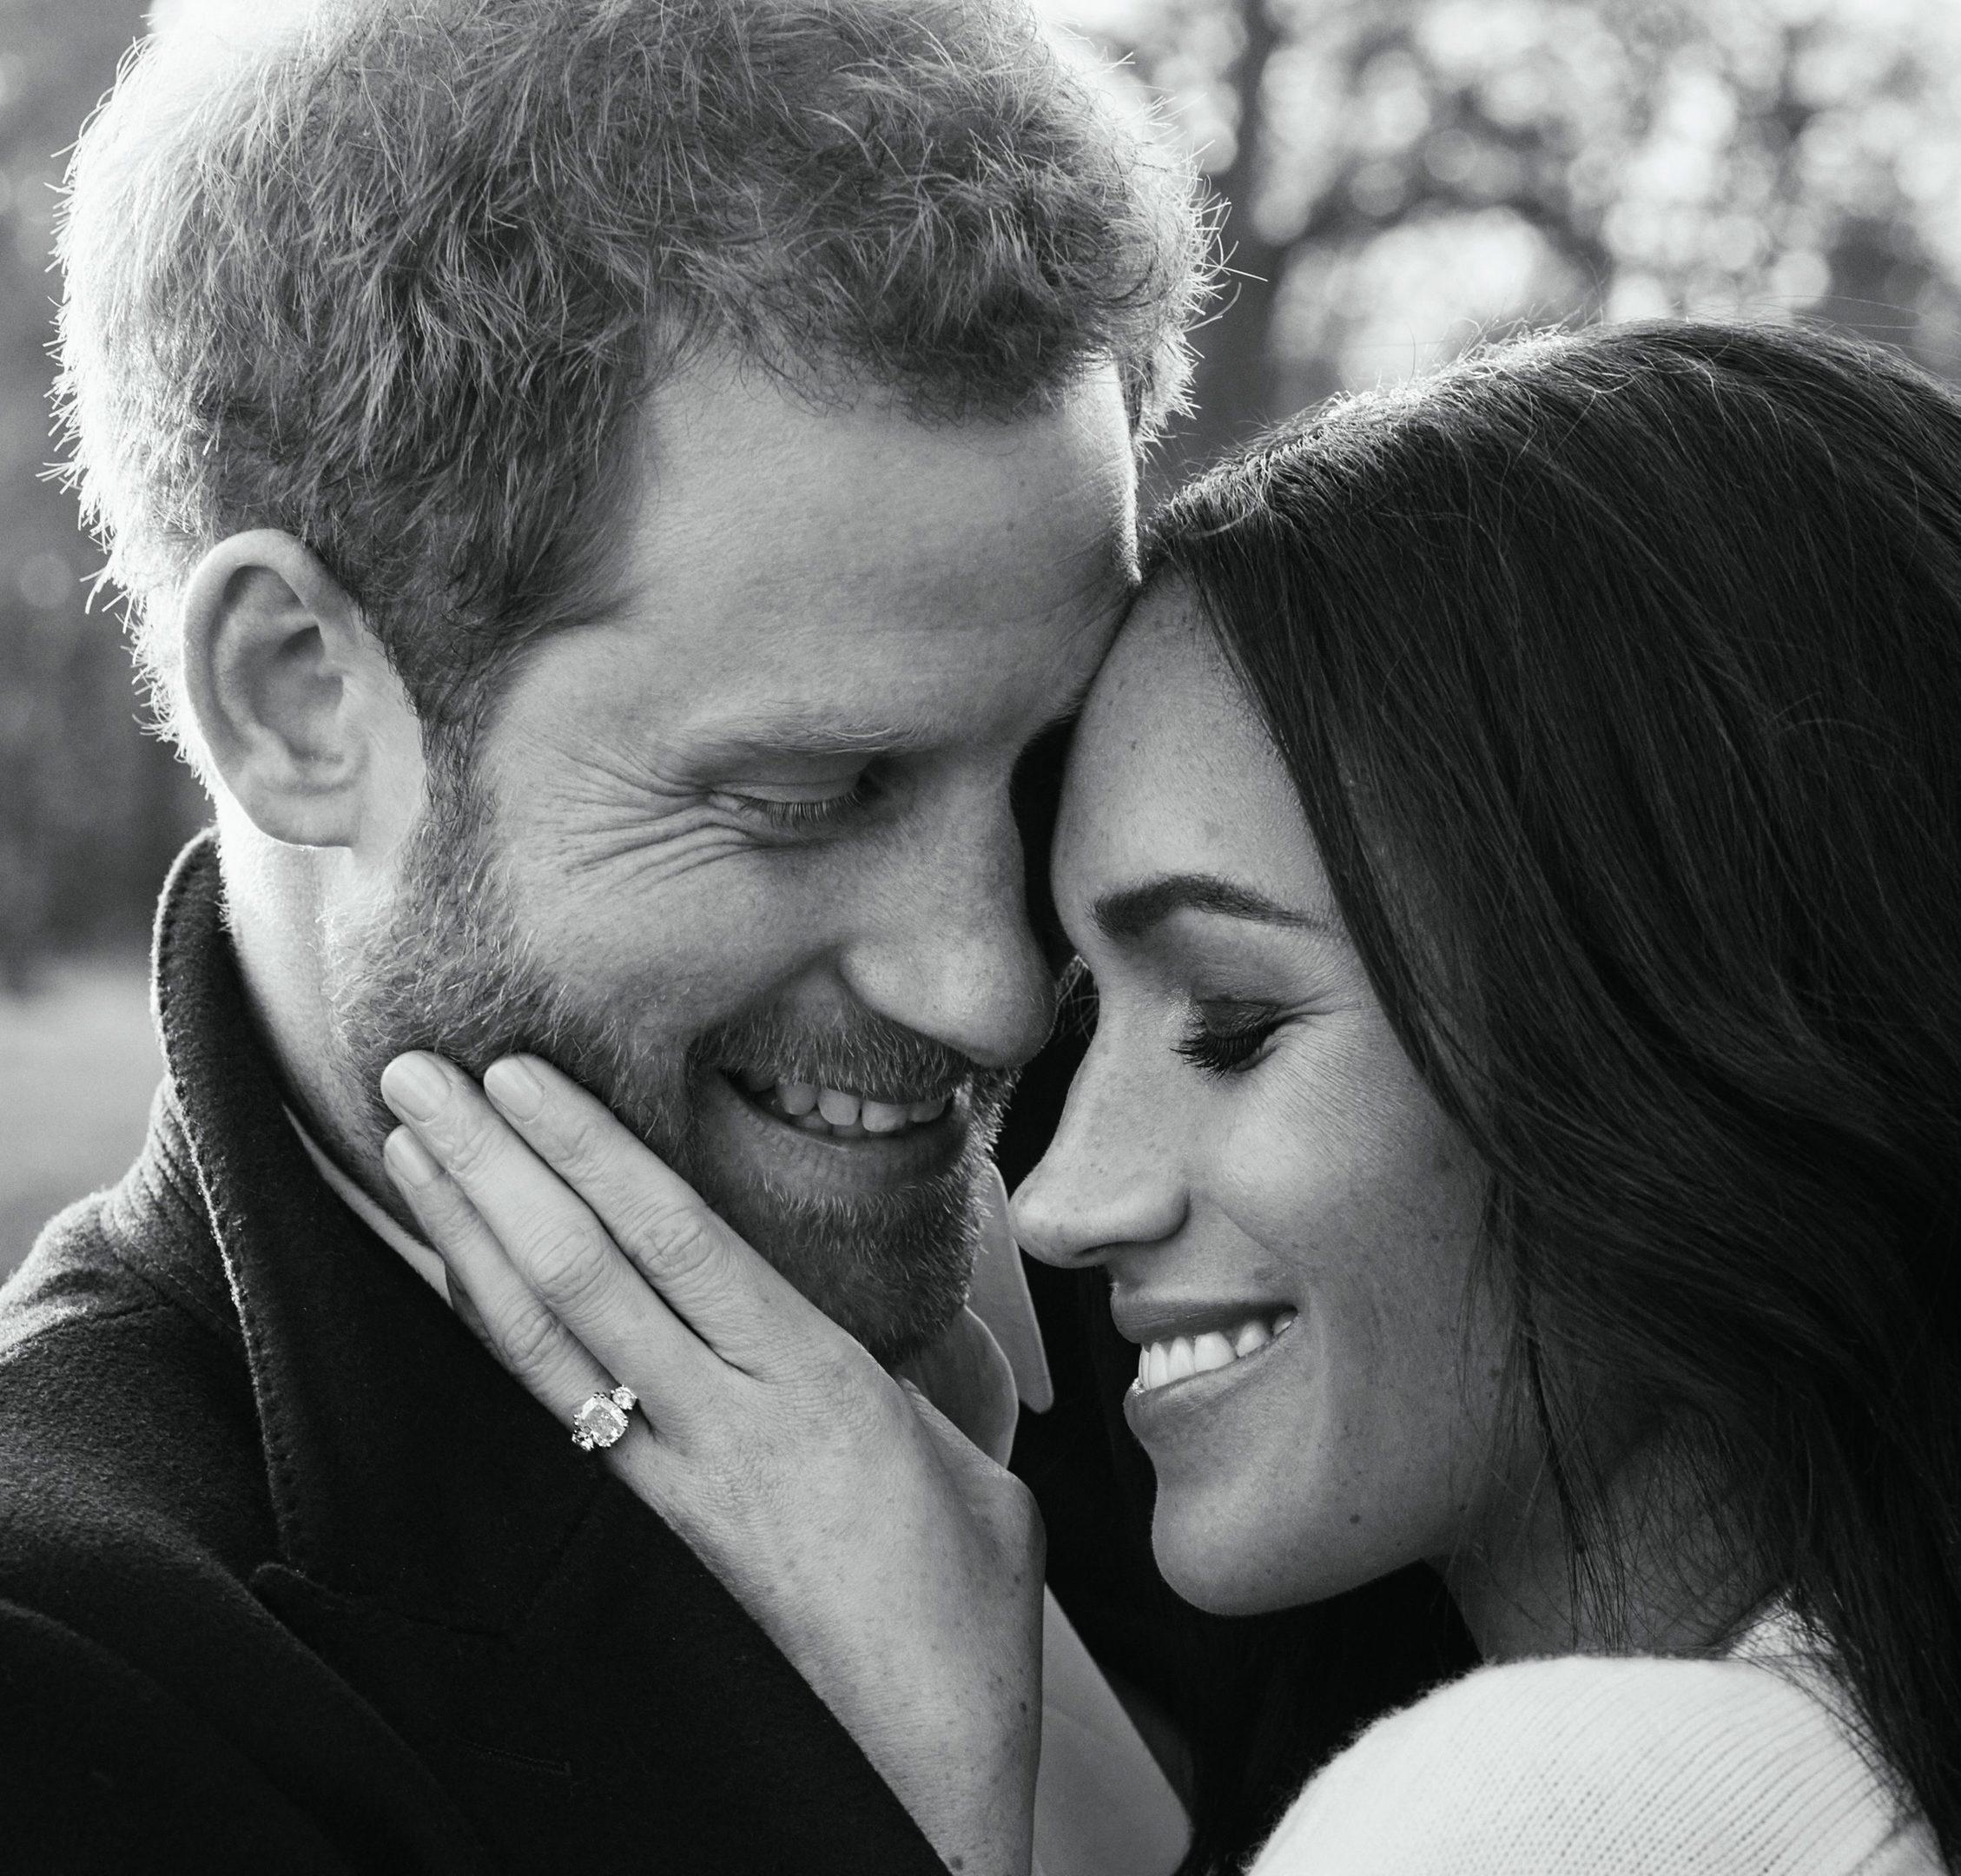 One of two official engagement photos released by Kensington Palace of Prince Harry and Meghan Markle taken by Alexi Lubomirski earlier this week at Frogmore House, Windsor. (Alexi Lubomirski)